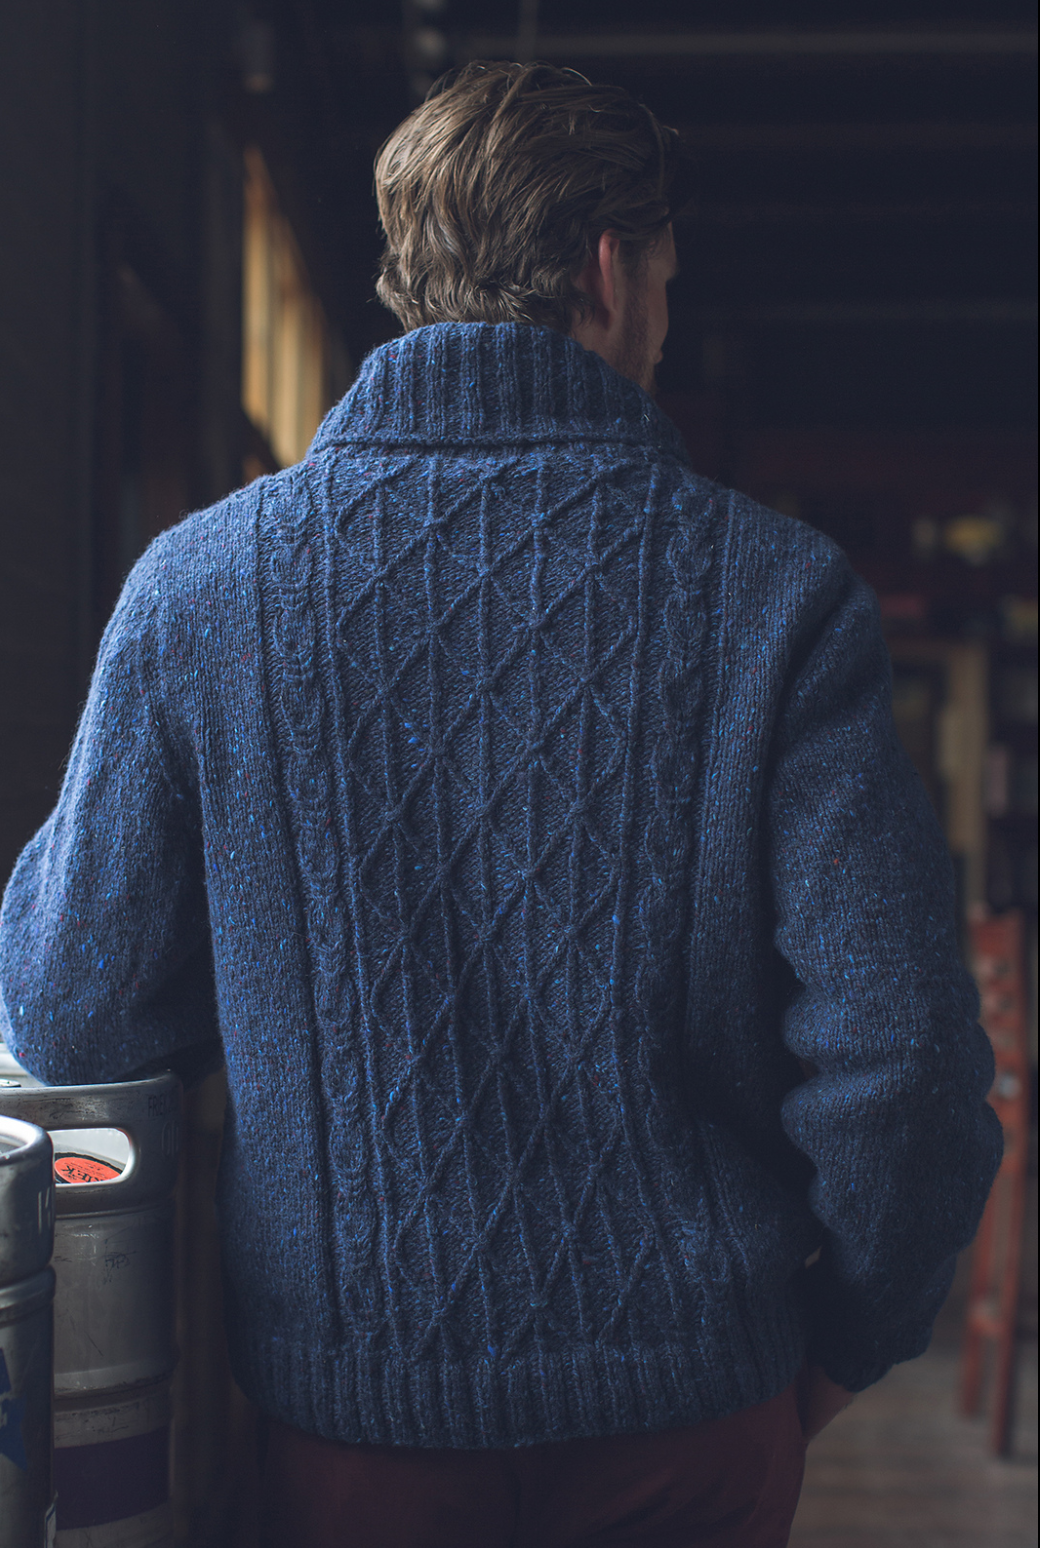 Interweave Knits Winter 2016 Donegal Sweater in The Fibre Co. Arranmore